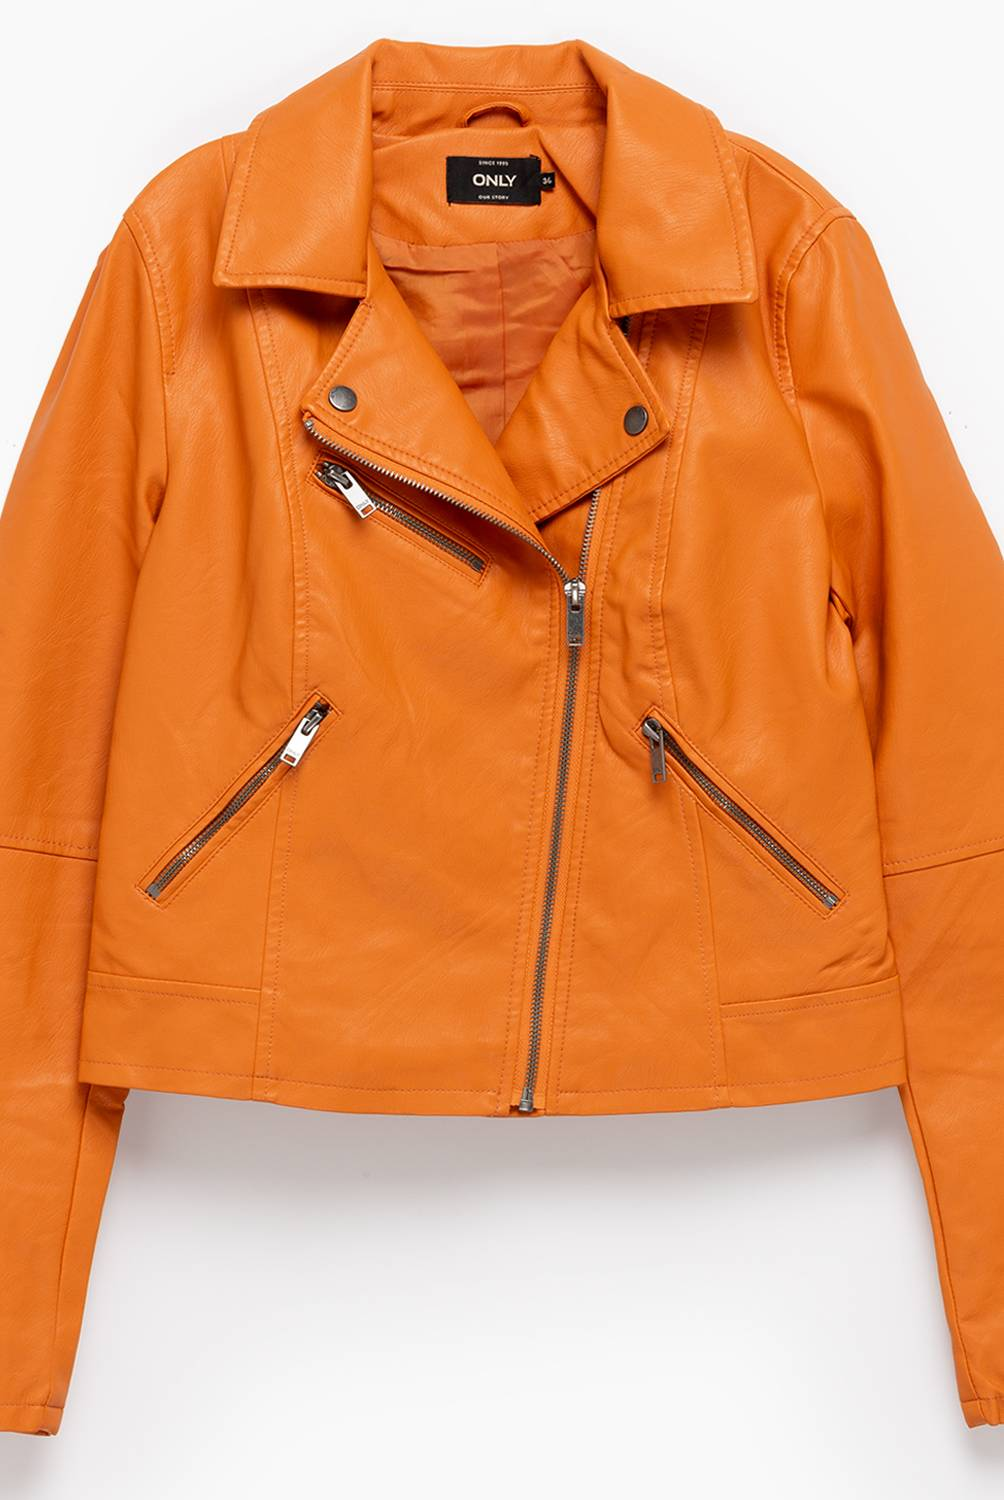 Only - Chaqueta